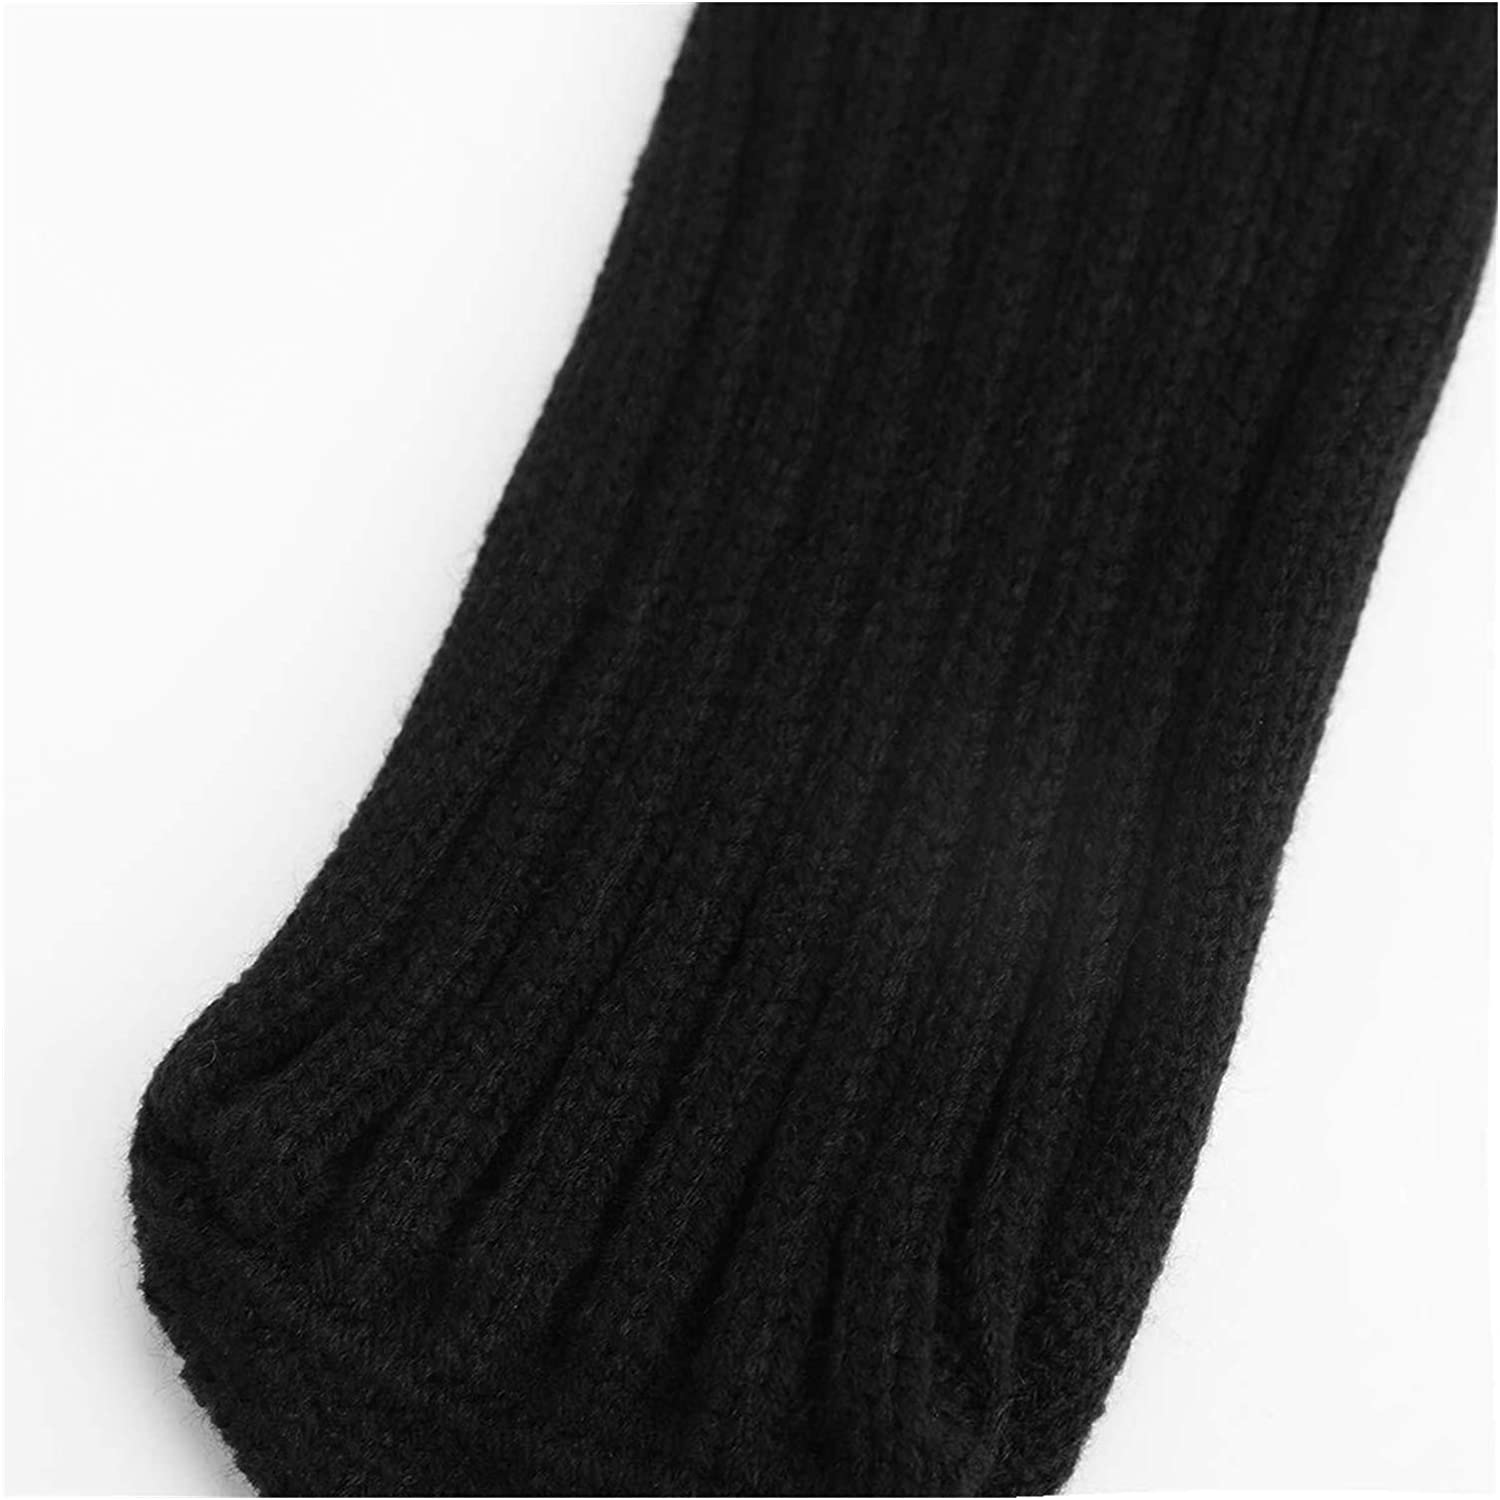 YUNSHAO Women's Knitted Long Boot Socks Knee Thigh High Cotton Socks Leg Warmers for Ladies Girls Indoor Floor Socks Long Stockings for Boots (Color : Black, Size : 62cm)